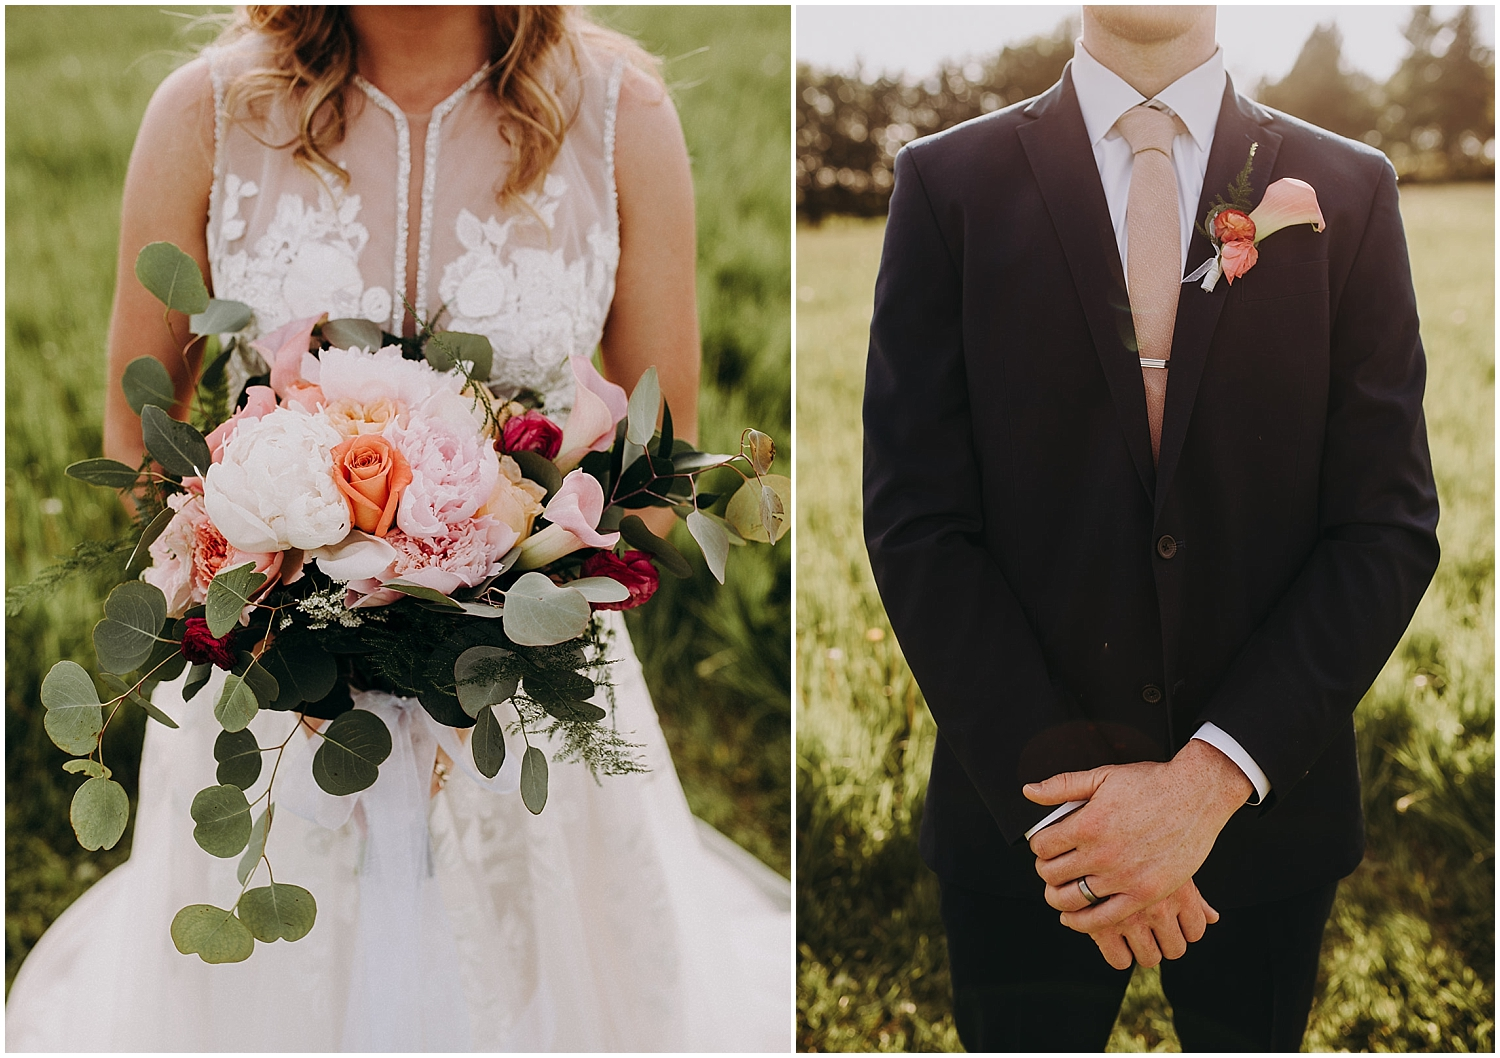 detail shot of the bride's wedding bouquet and groom's look and boutonniere